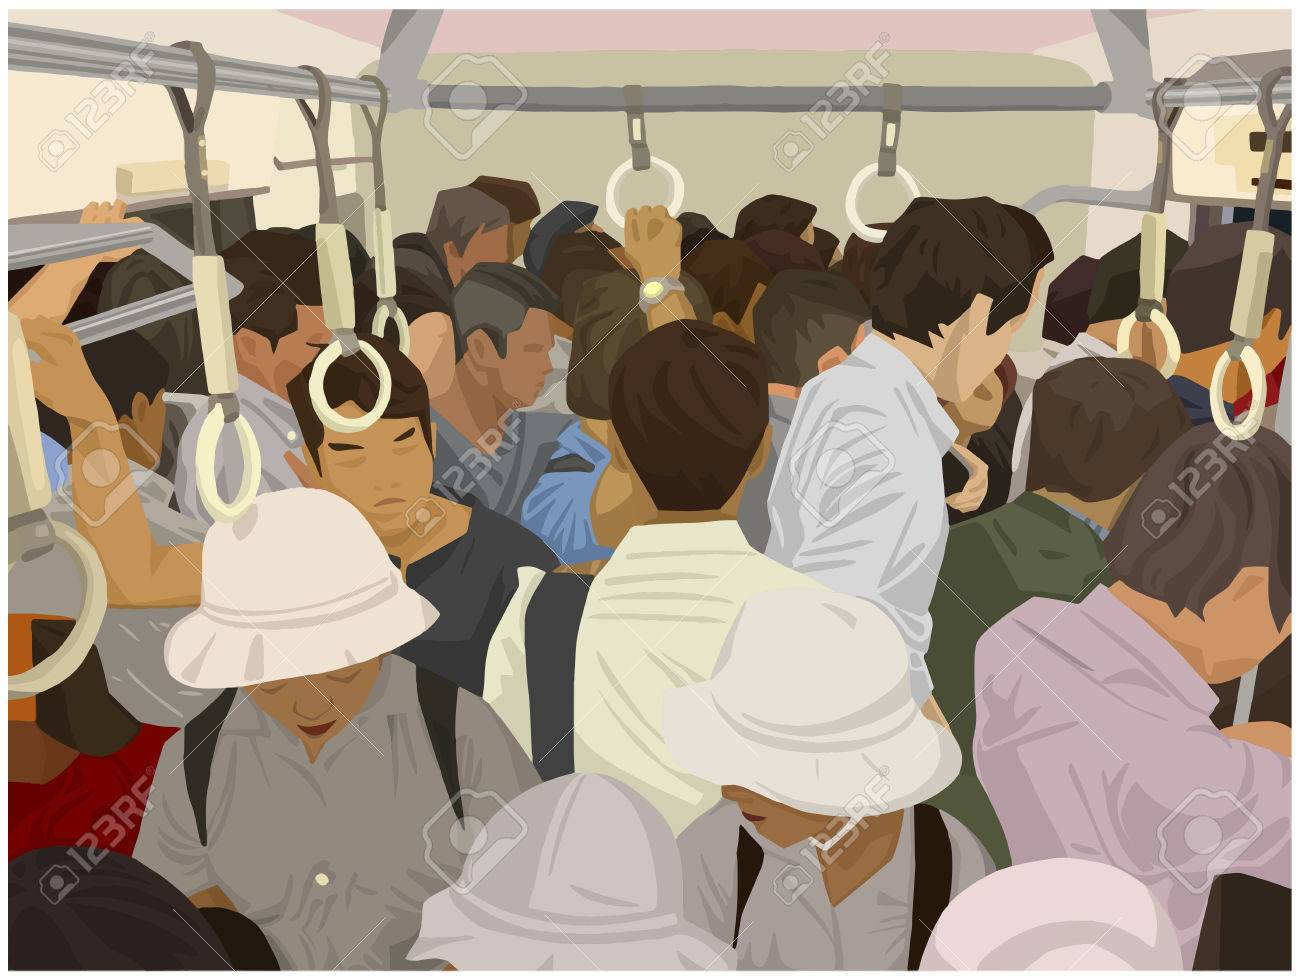 Illustration of crowded commuter train in color - 83785172